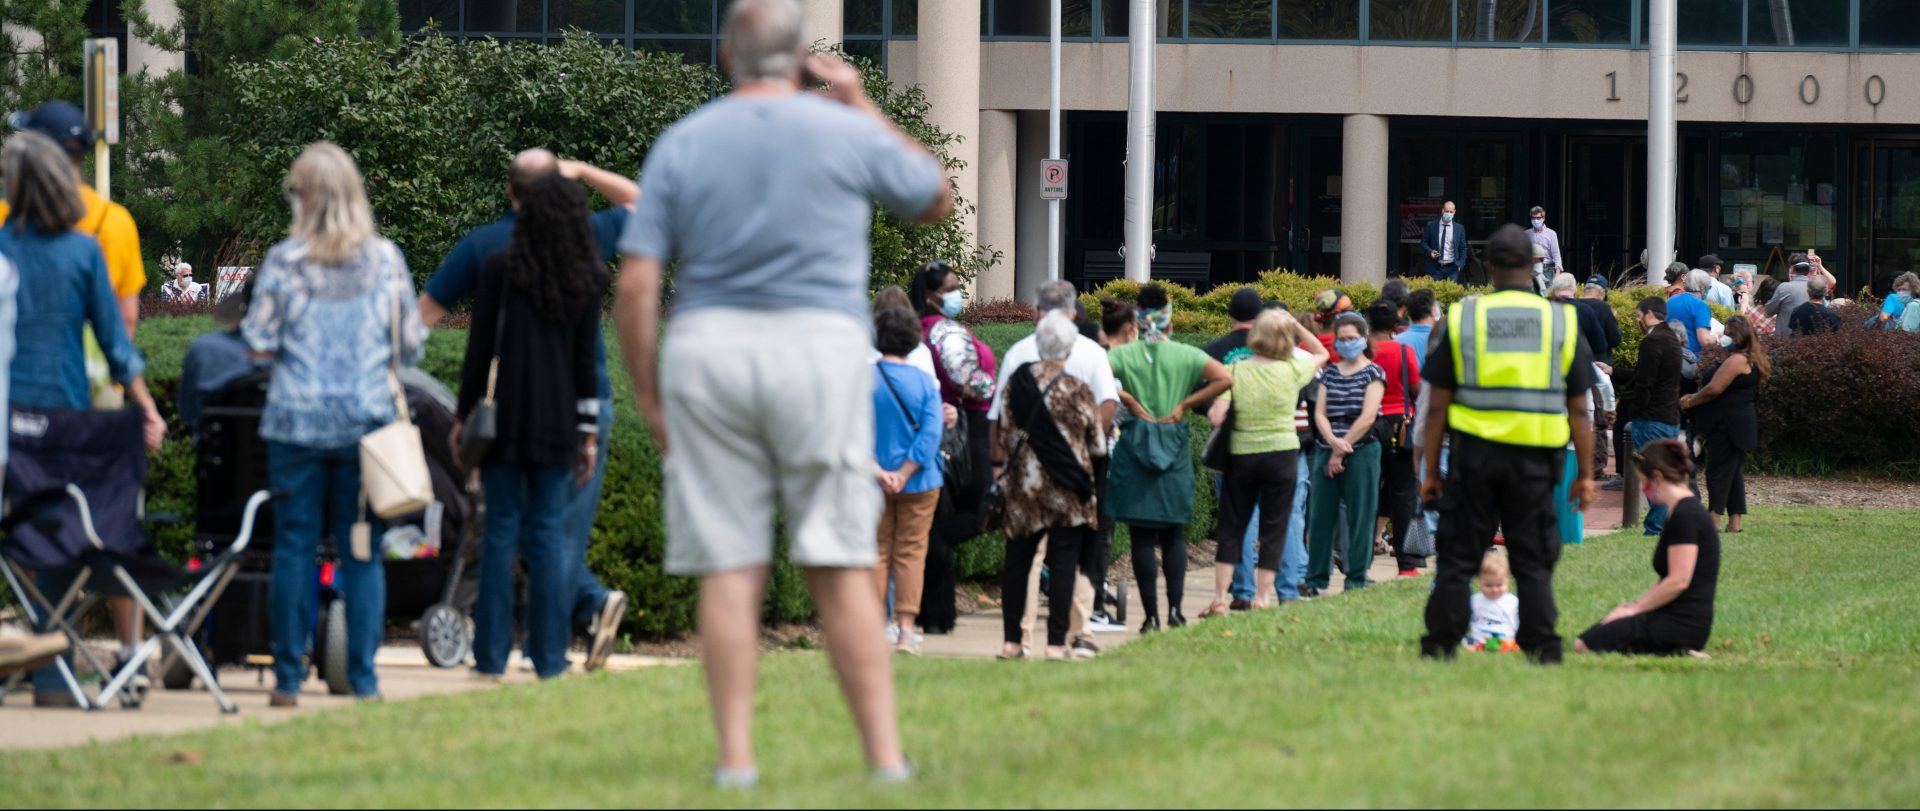 Voters wait in line to cast their ballot at an early voting location in Fairfax, Virginia on September 18, 2020. Growing tensions in the country have some election officials worried about potential violence at polling places.